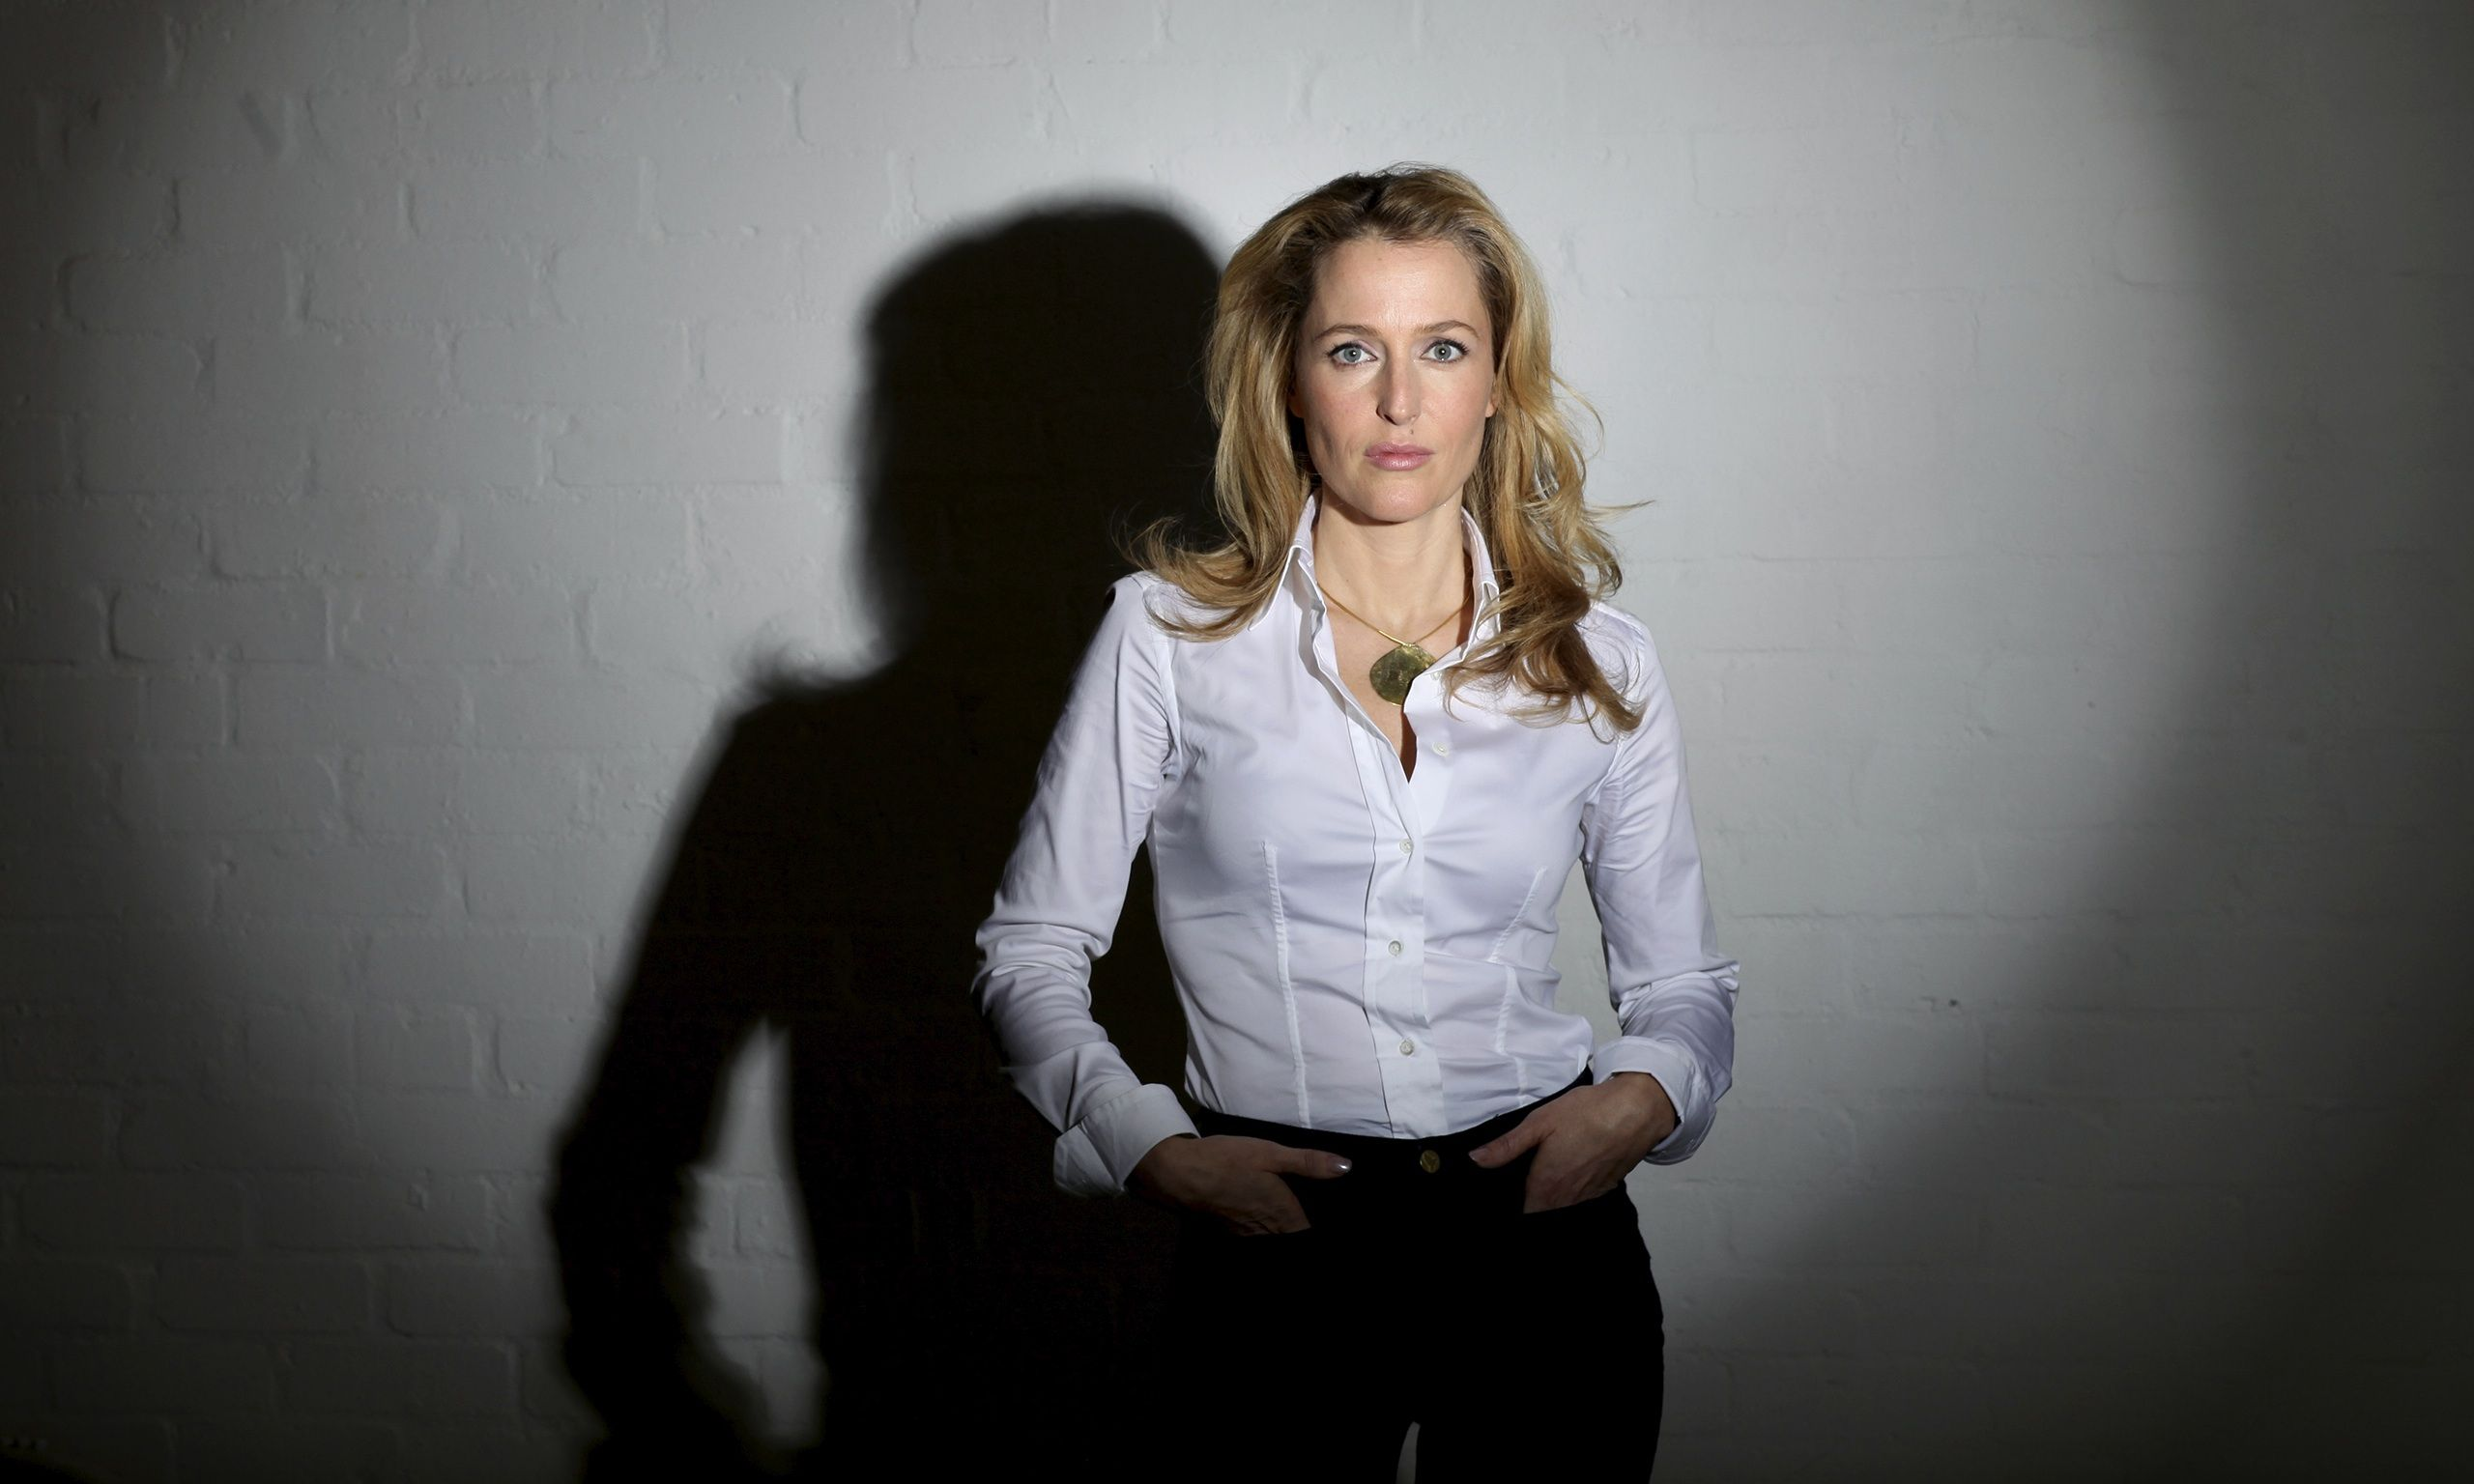 X-Files star Gillian Anderson to write science fiction novels